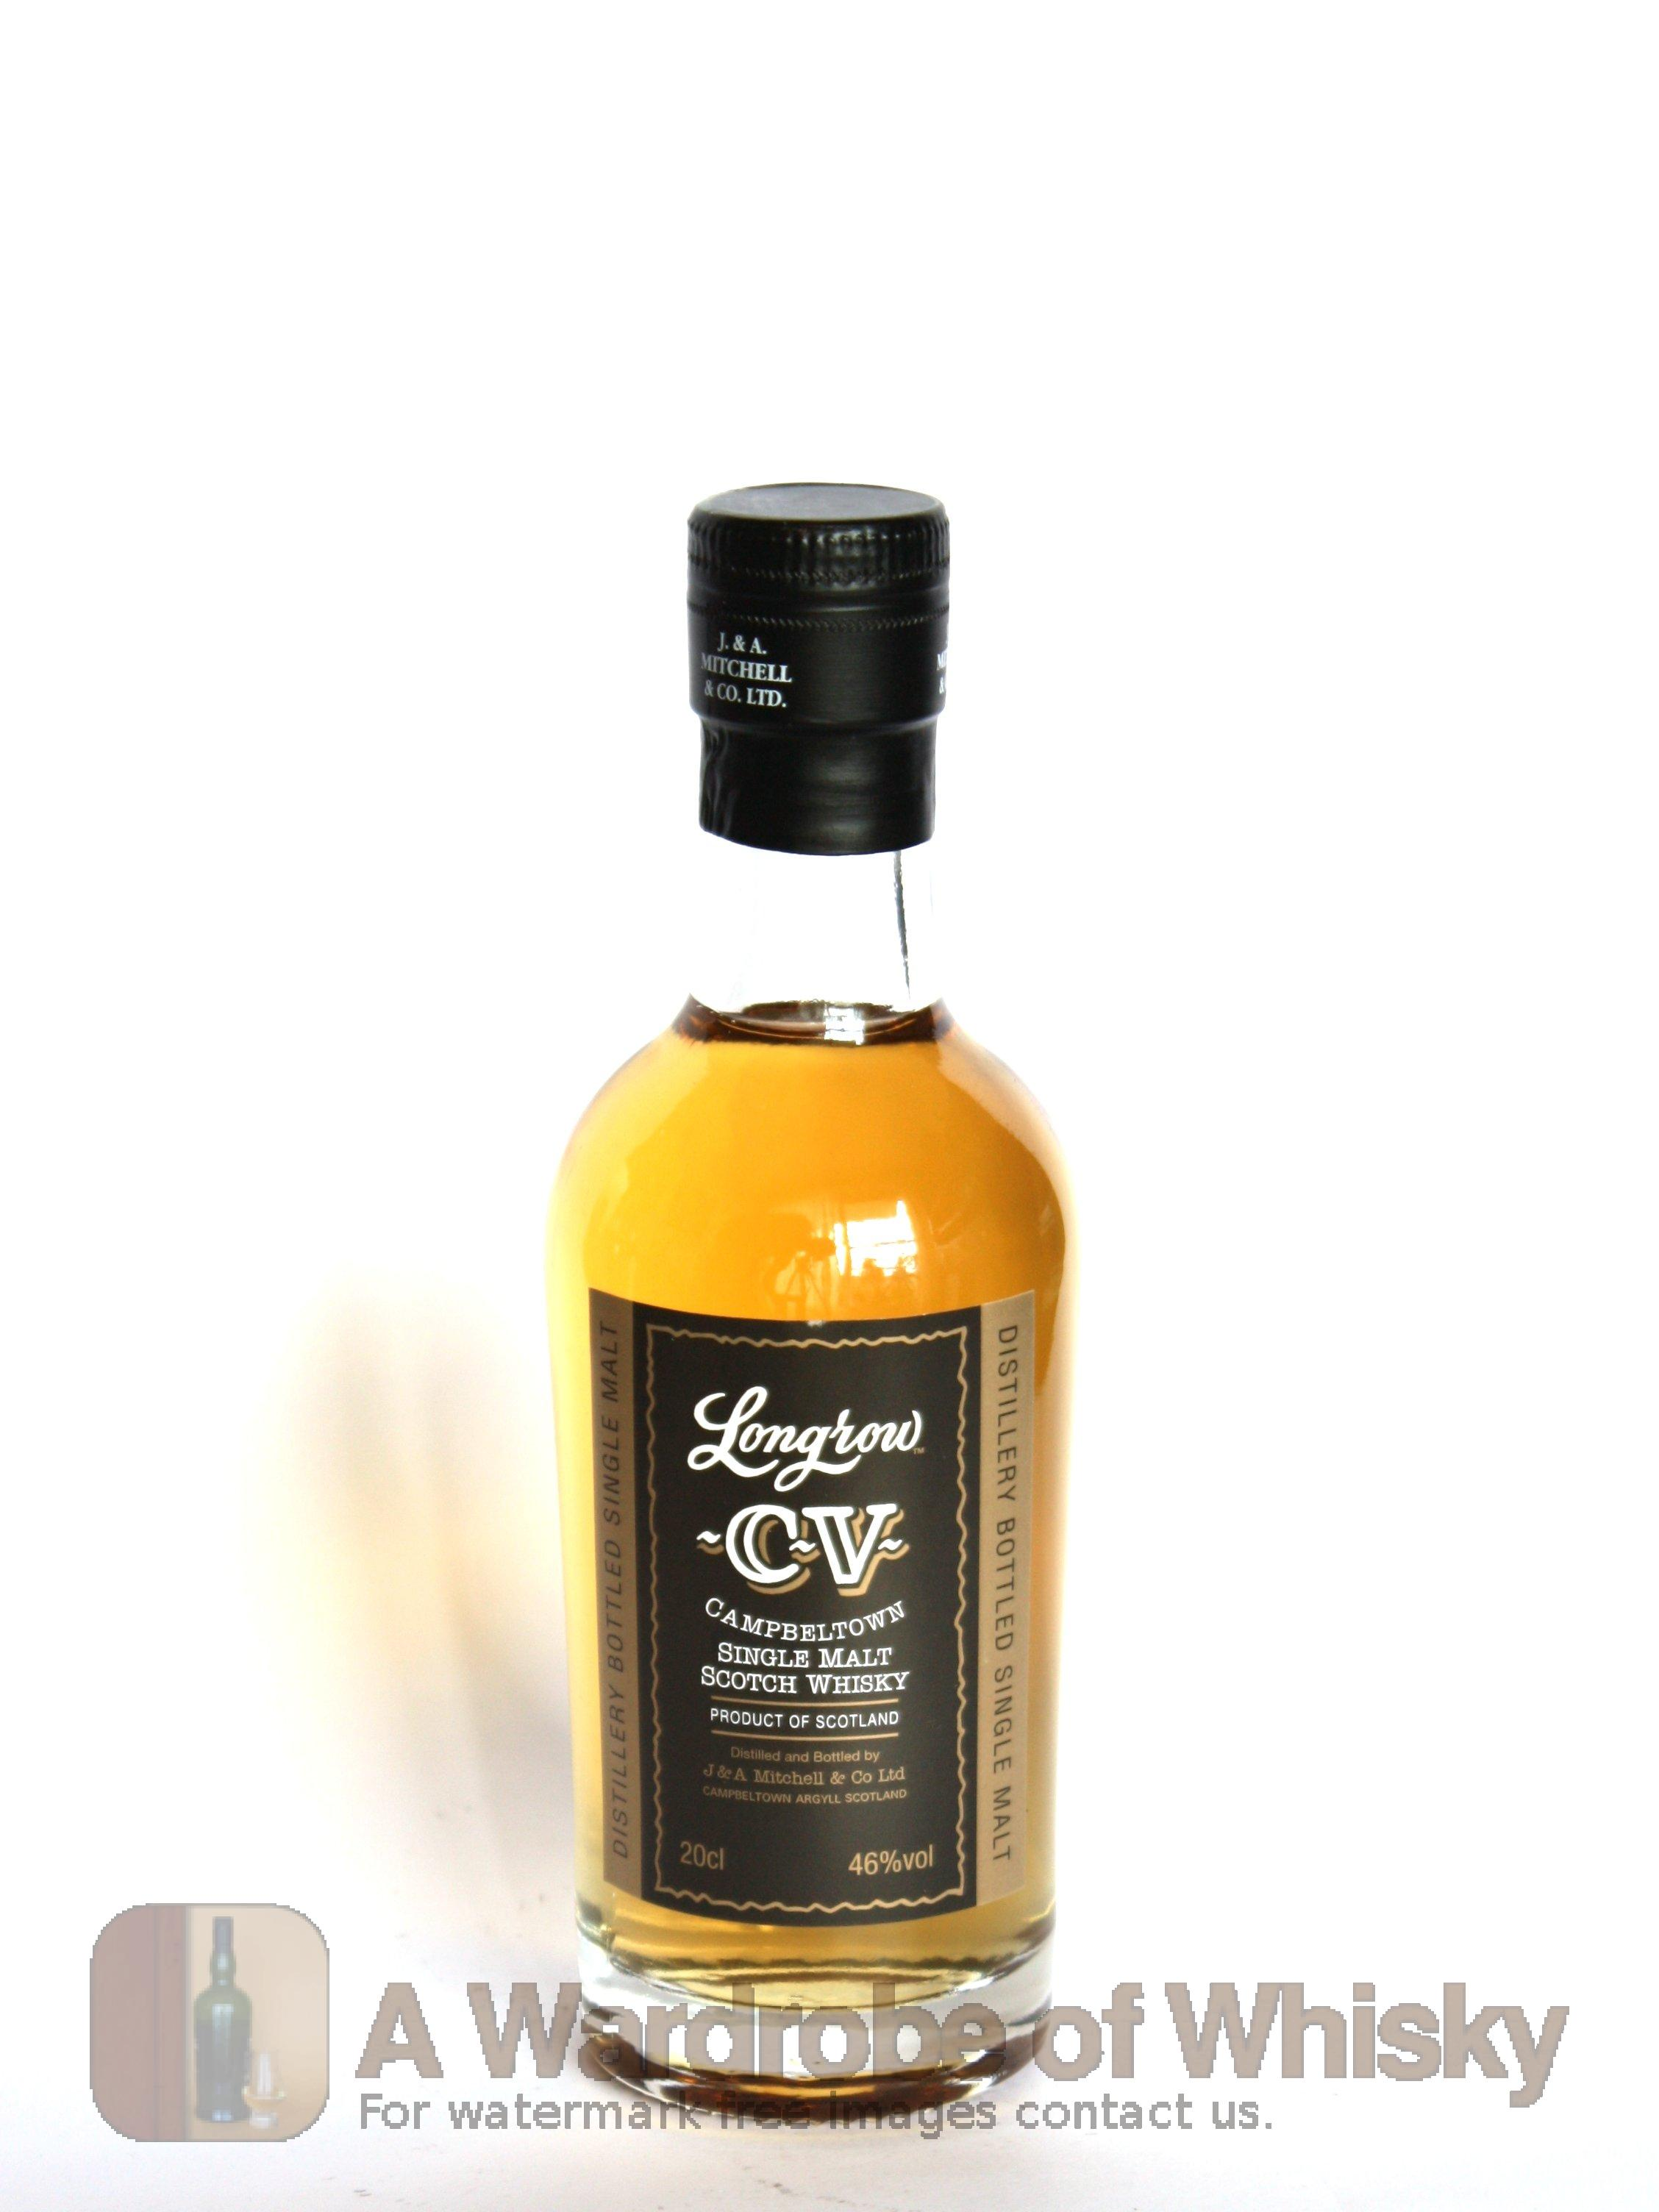 half-bottle of longrow cv single malt whisky